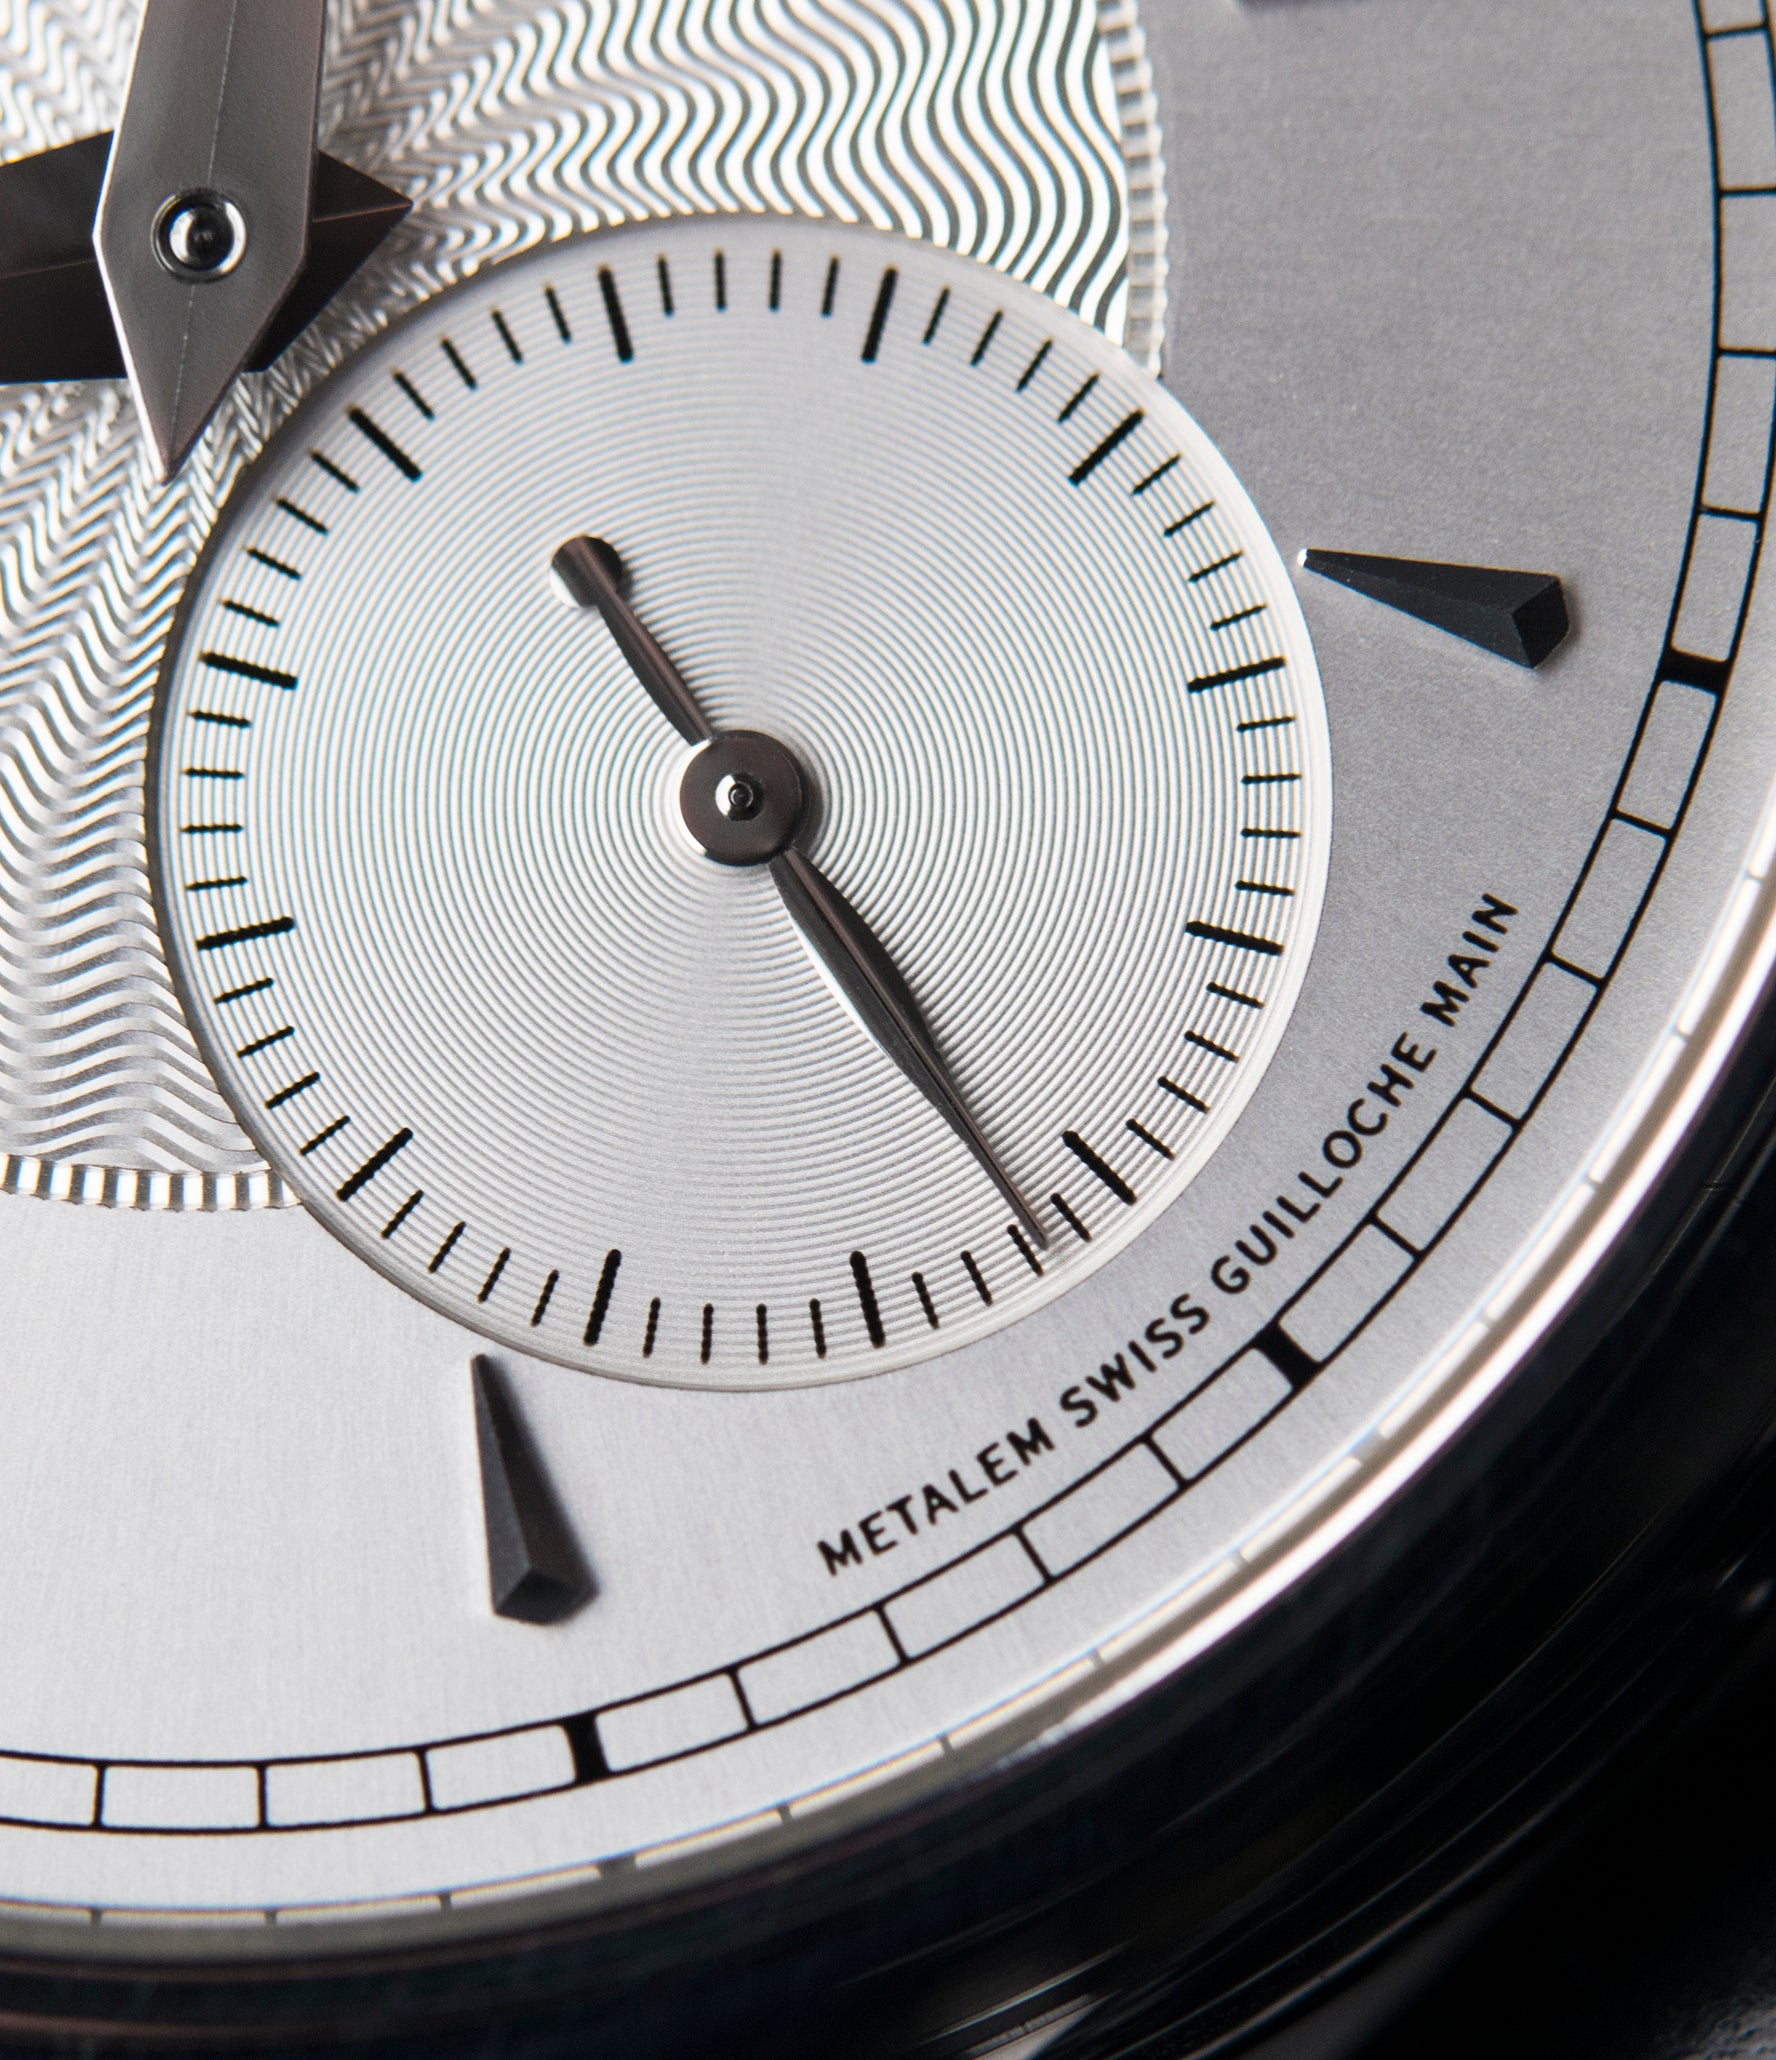 silver dial Philippe Dufour Simplicity platinum time-only dress watch for sale online at A Collected Man London UK approved specialist of preowned independent watchmakers